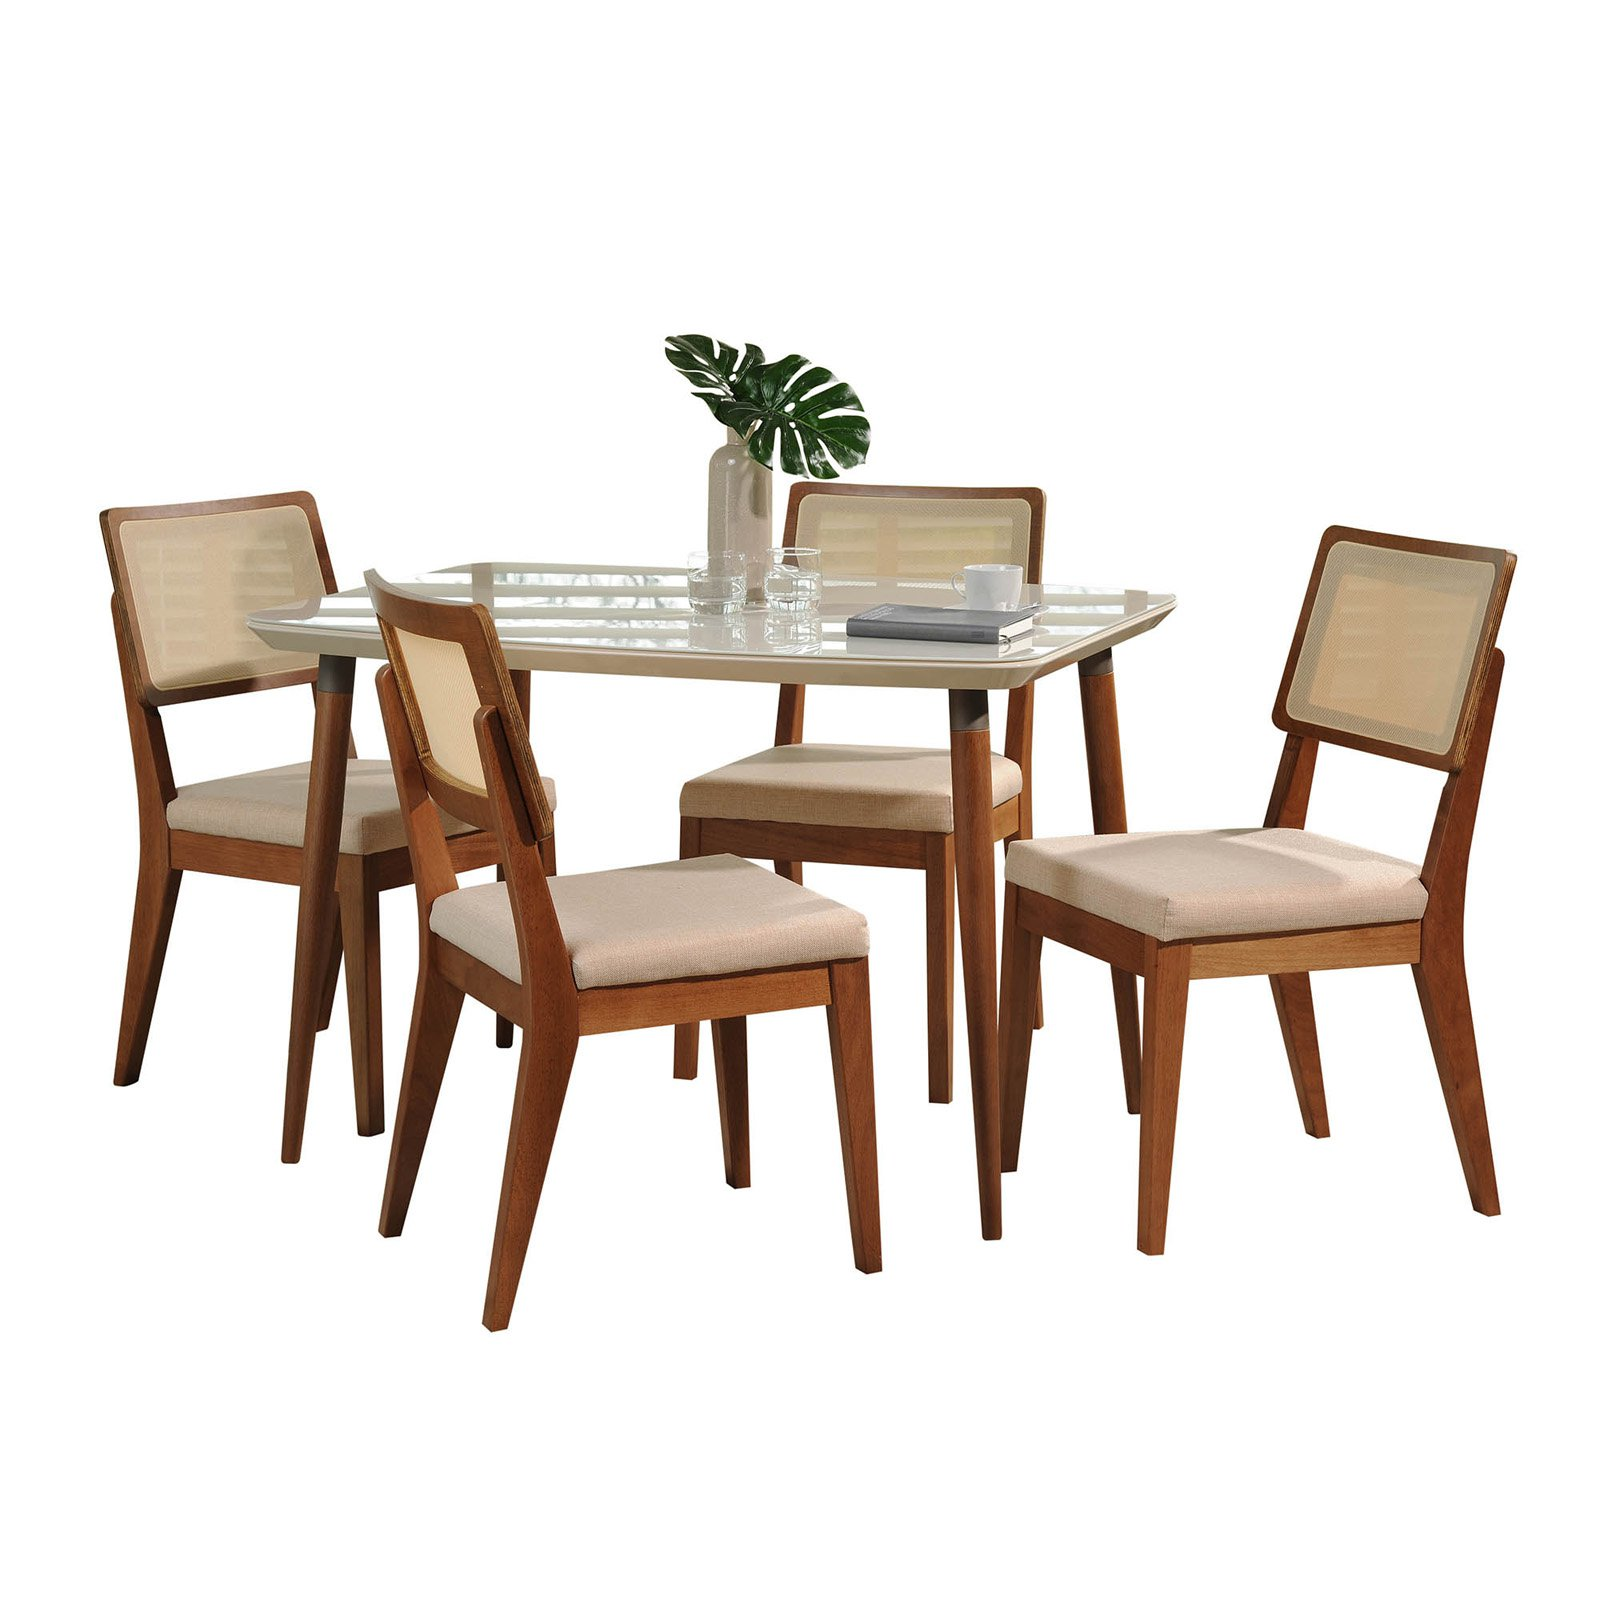 Manhattan Comfort Charles and Pell 5 Piece Dining Table Set